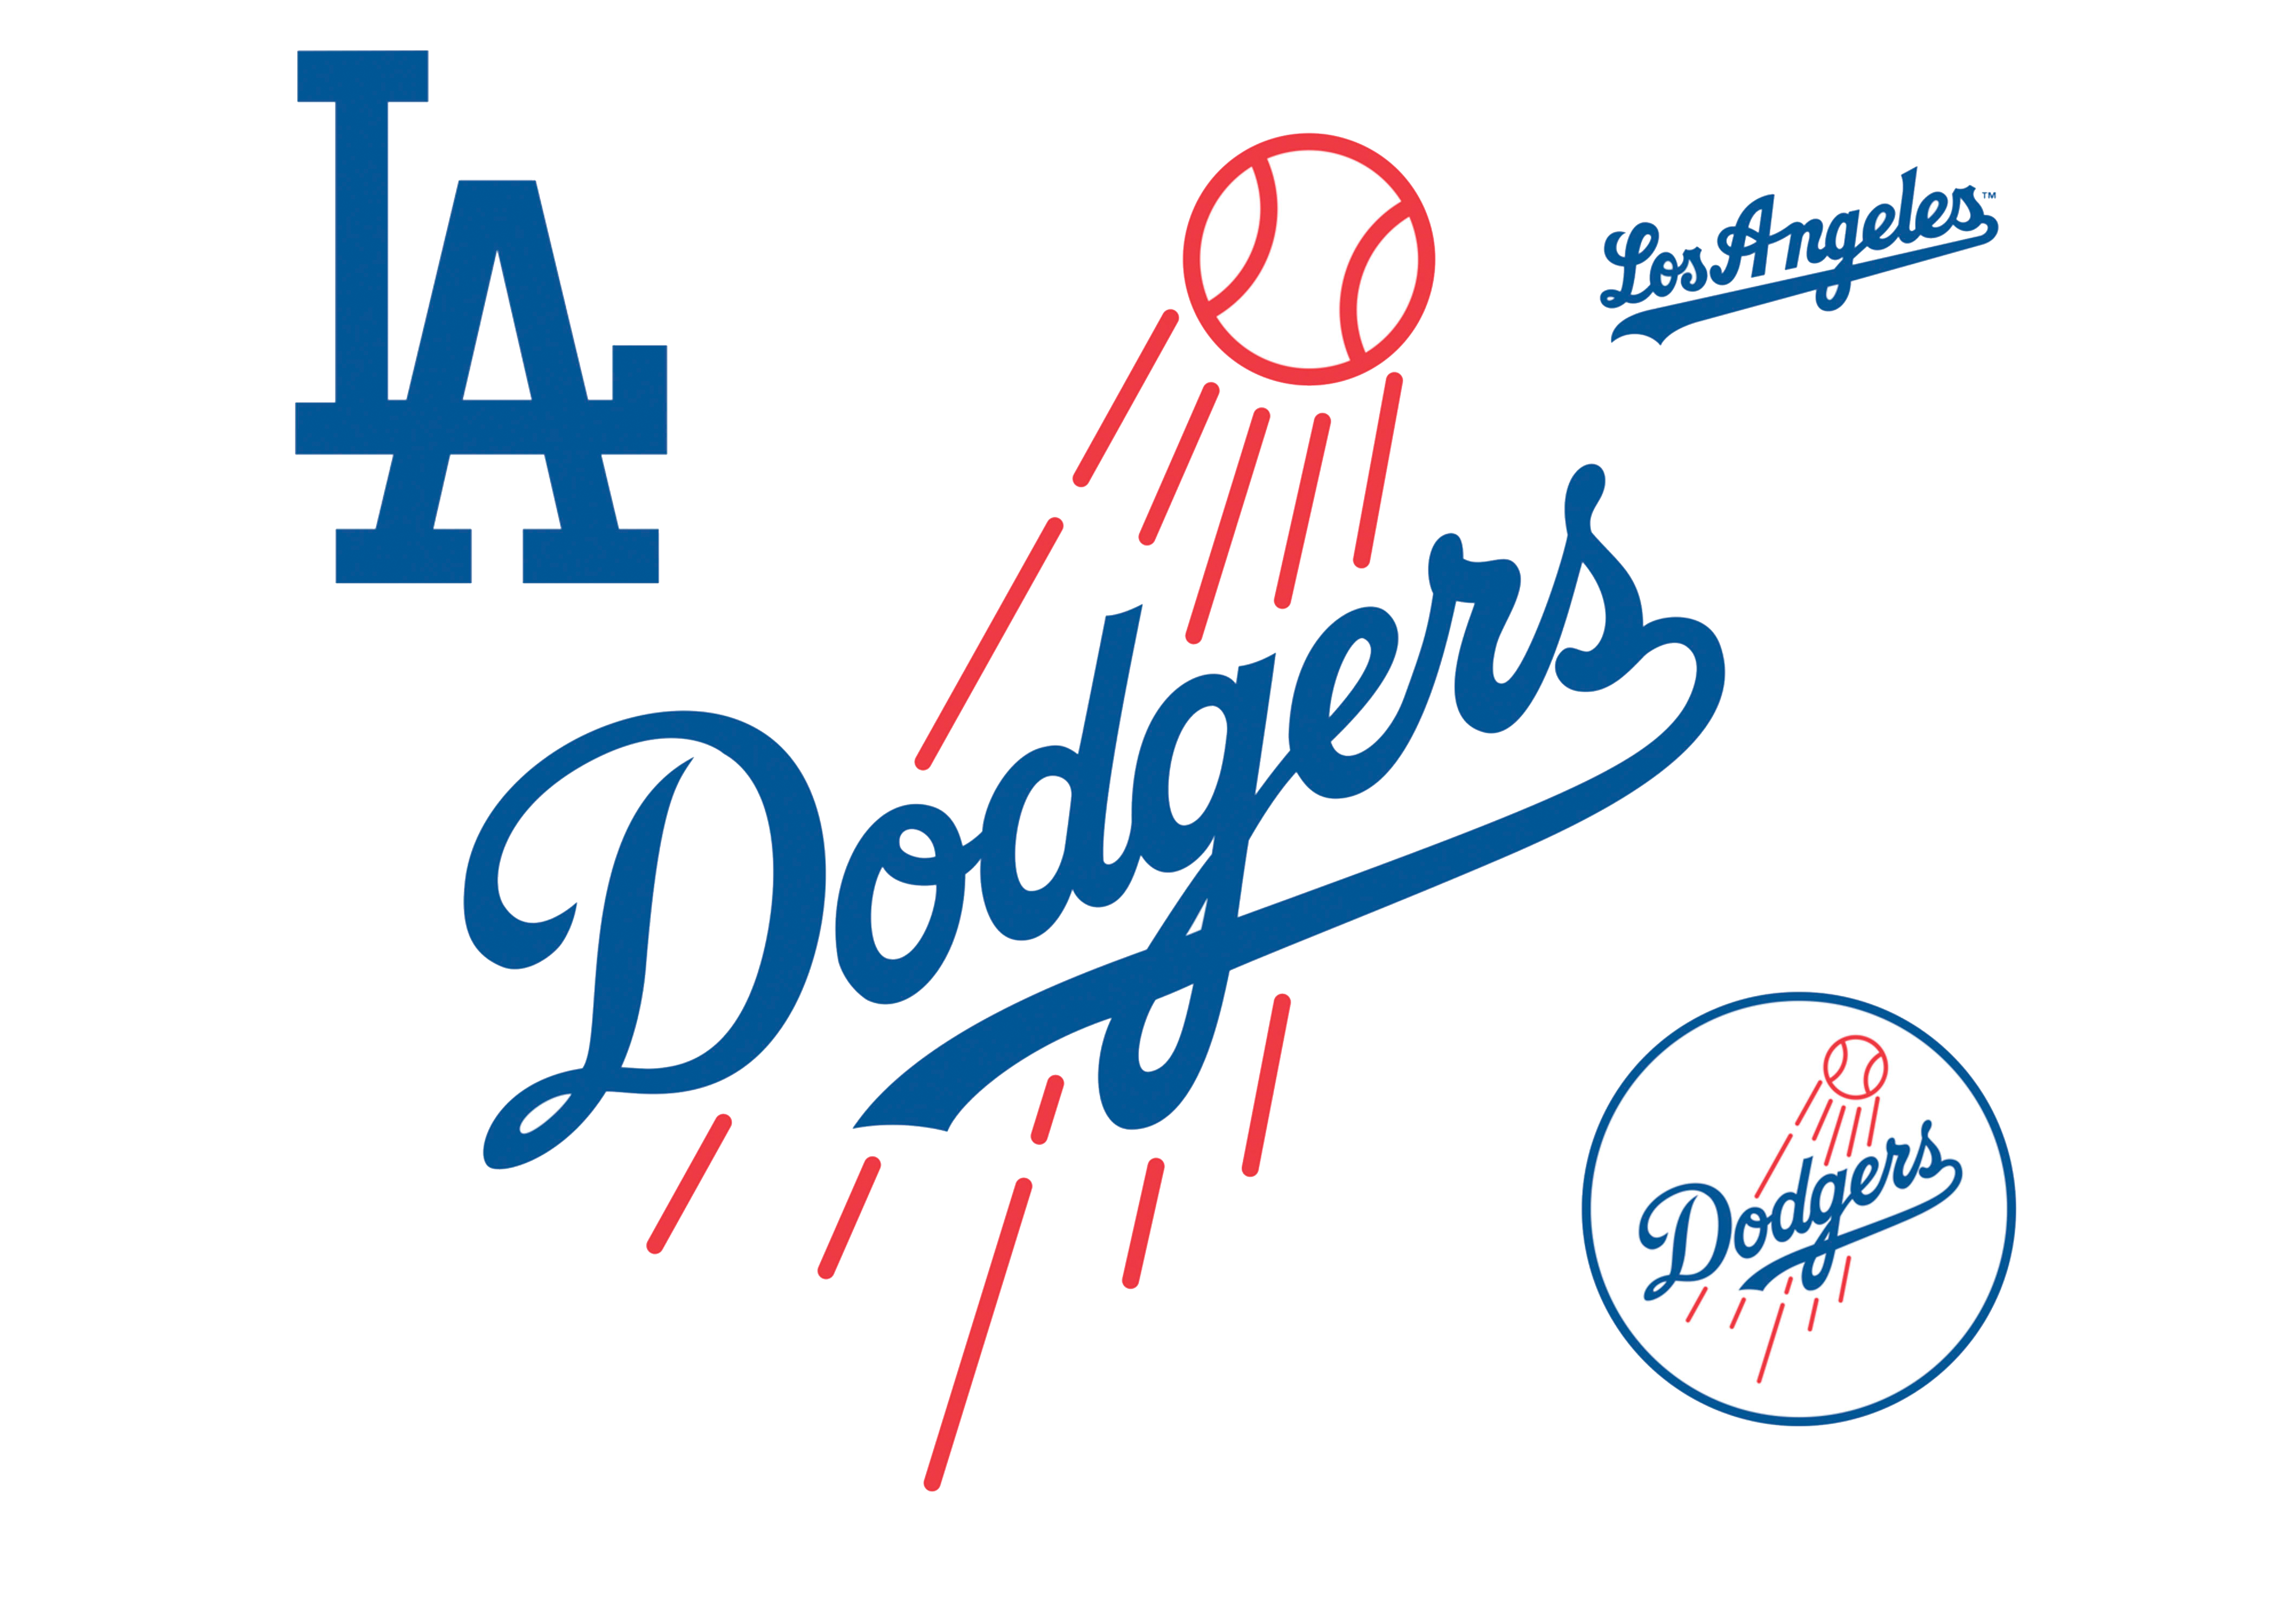 Dodgers drawing. All logos png image